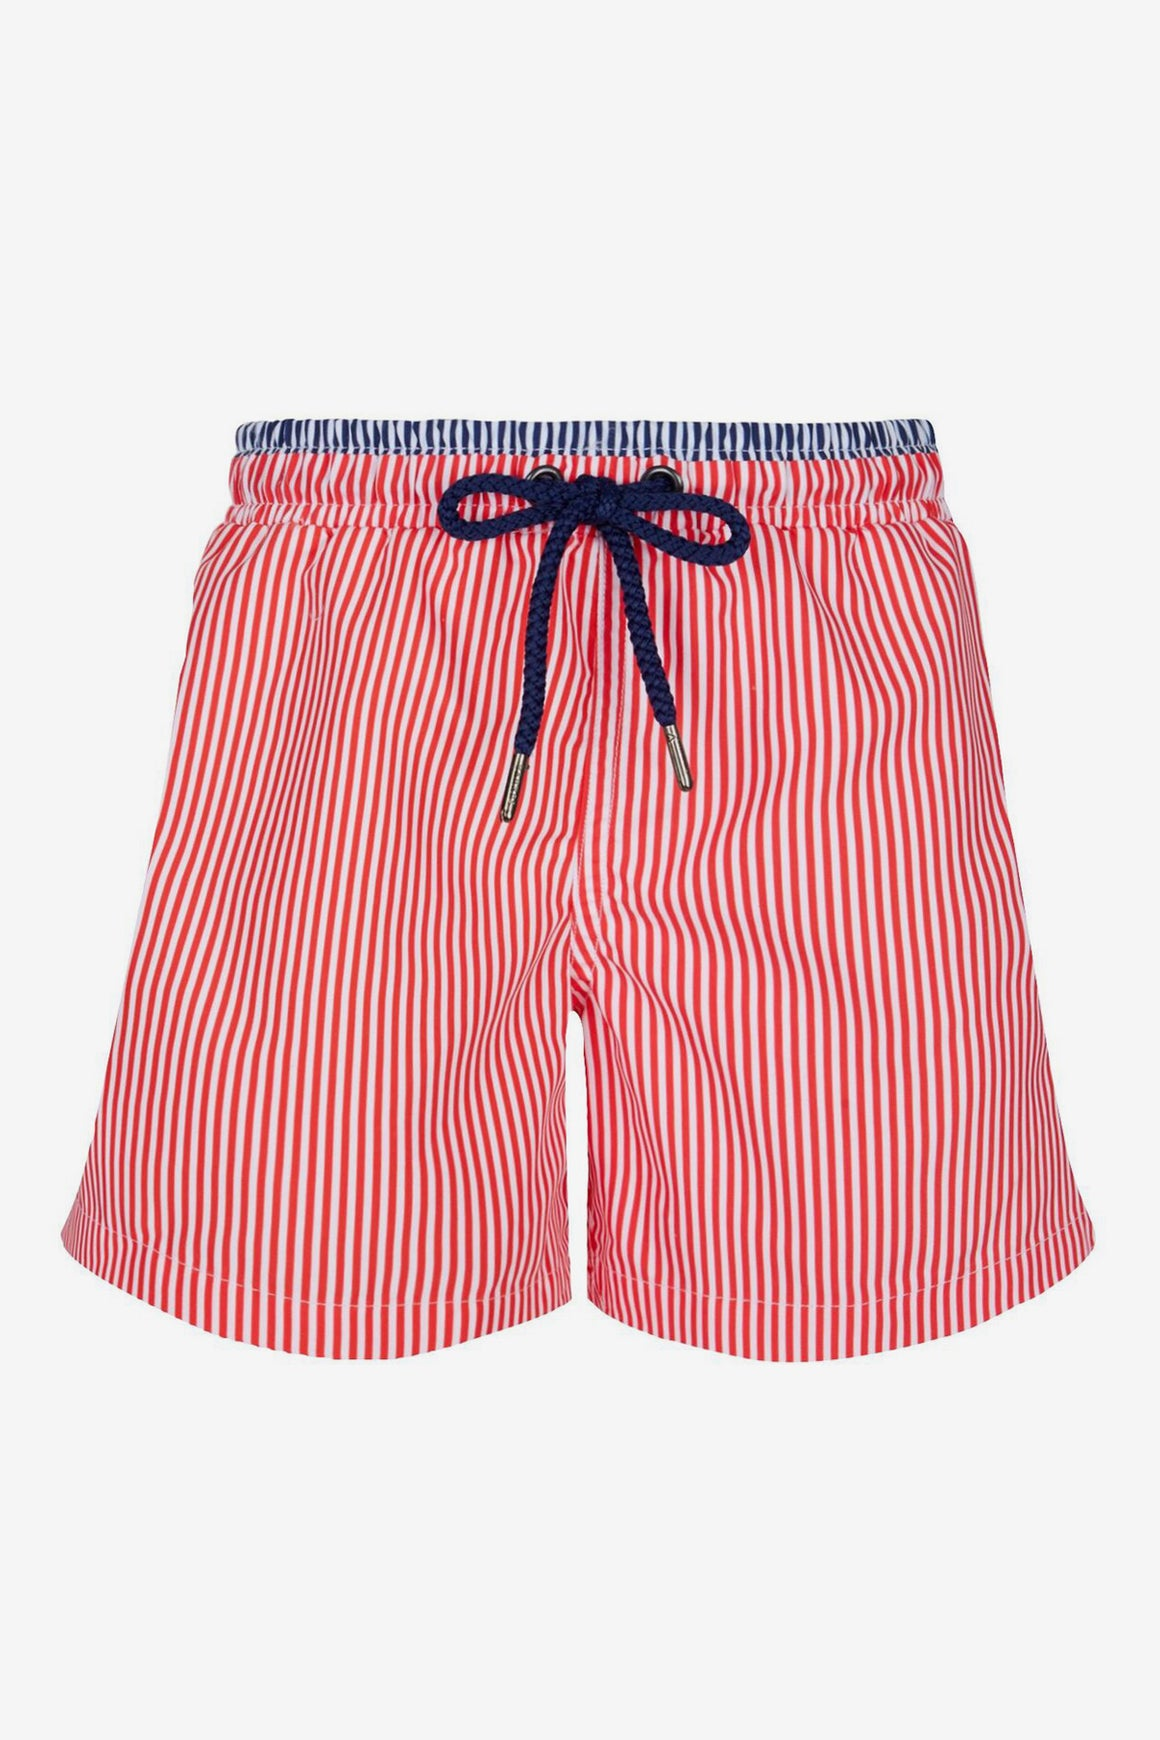 Sunuva Boys Classic Red Stripe Swim Short